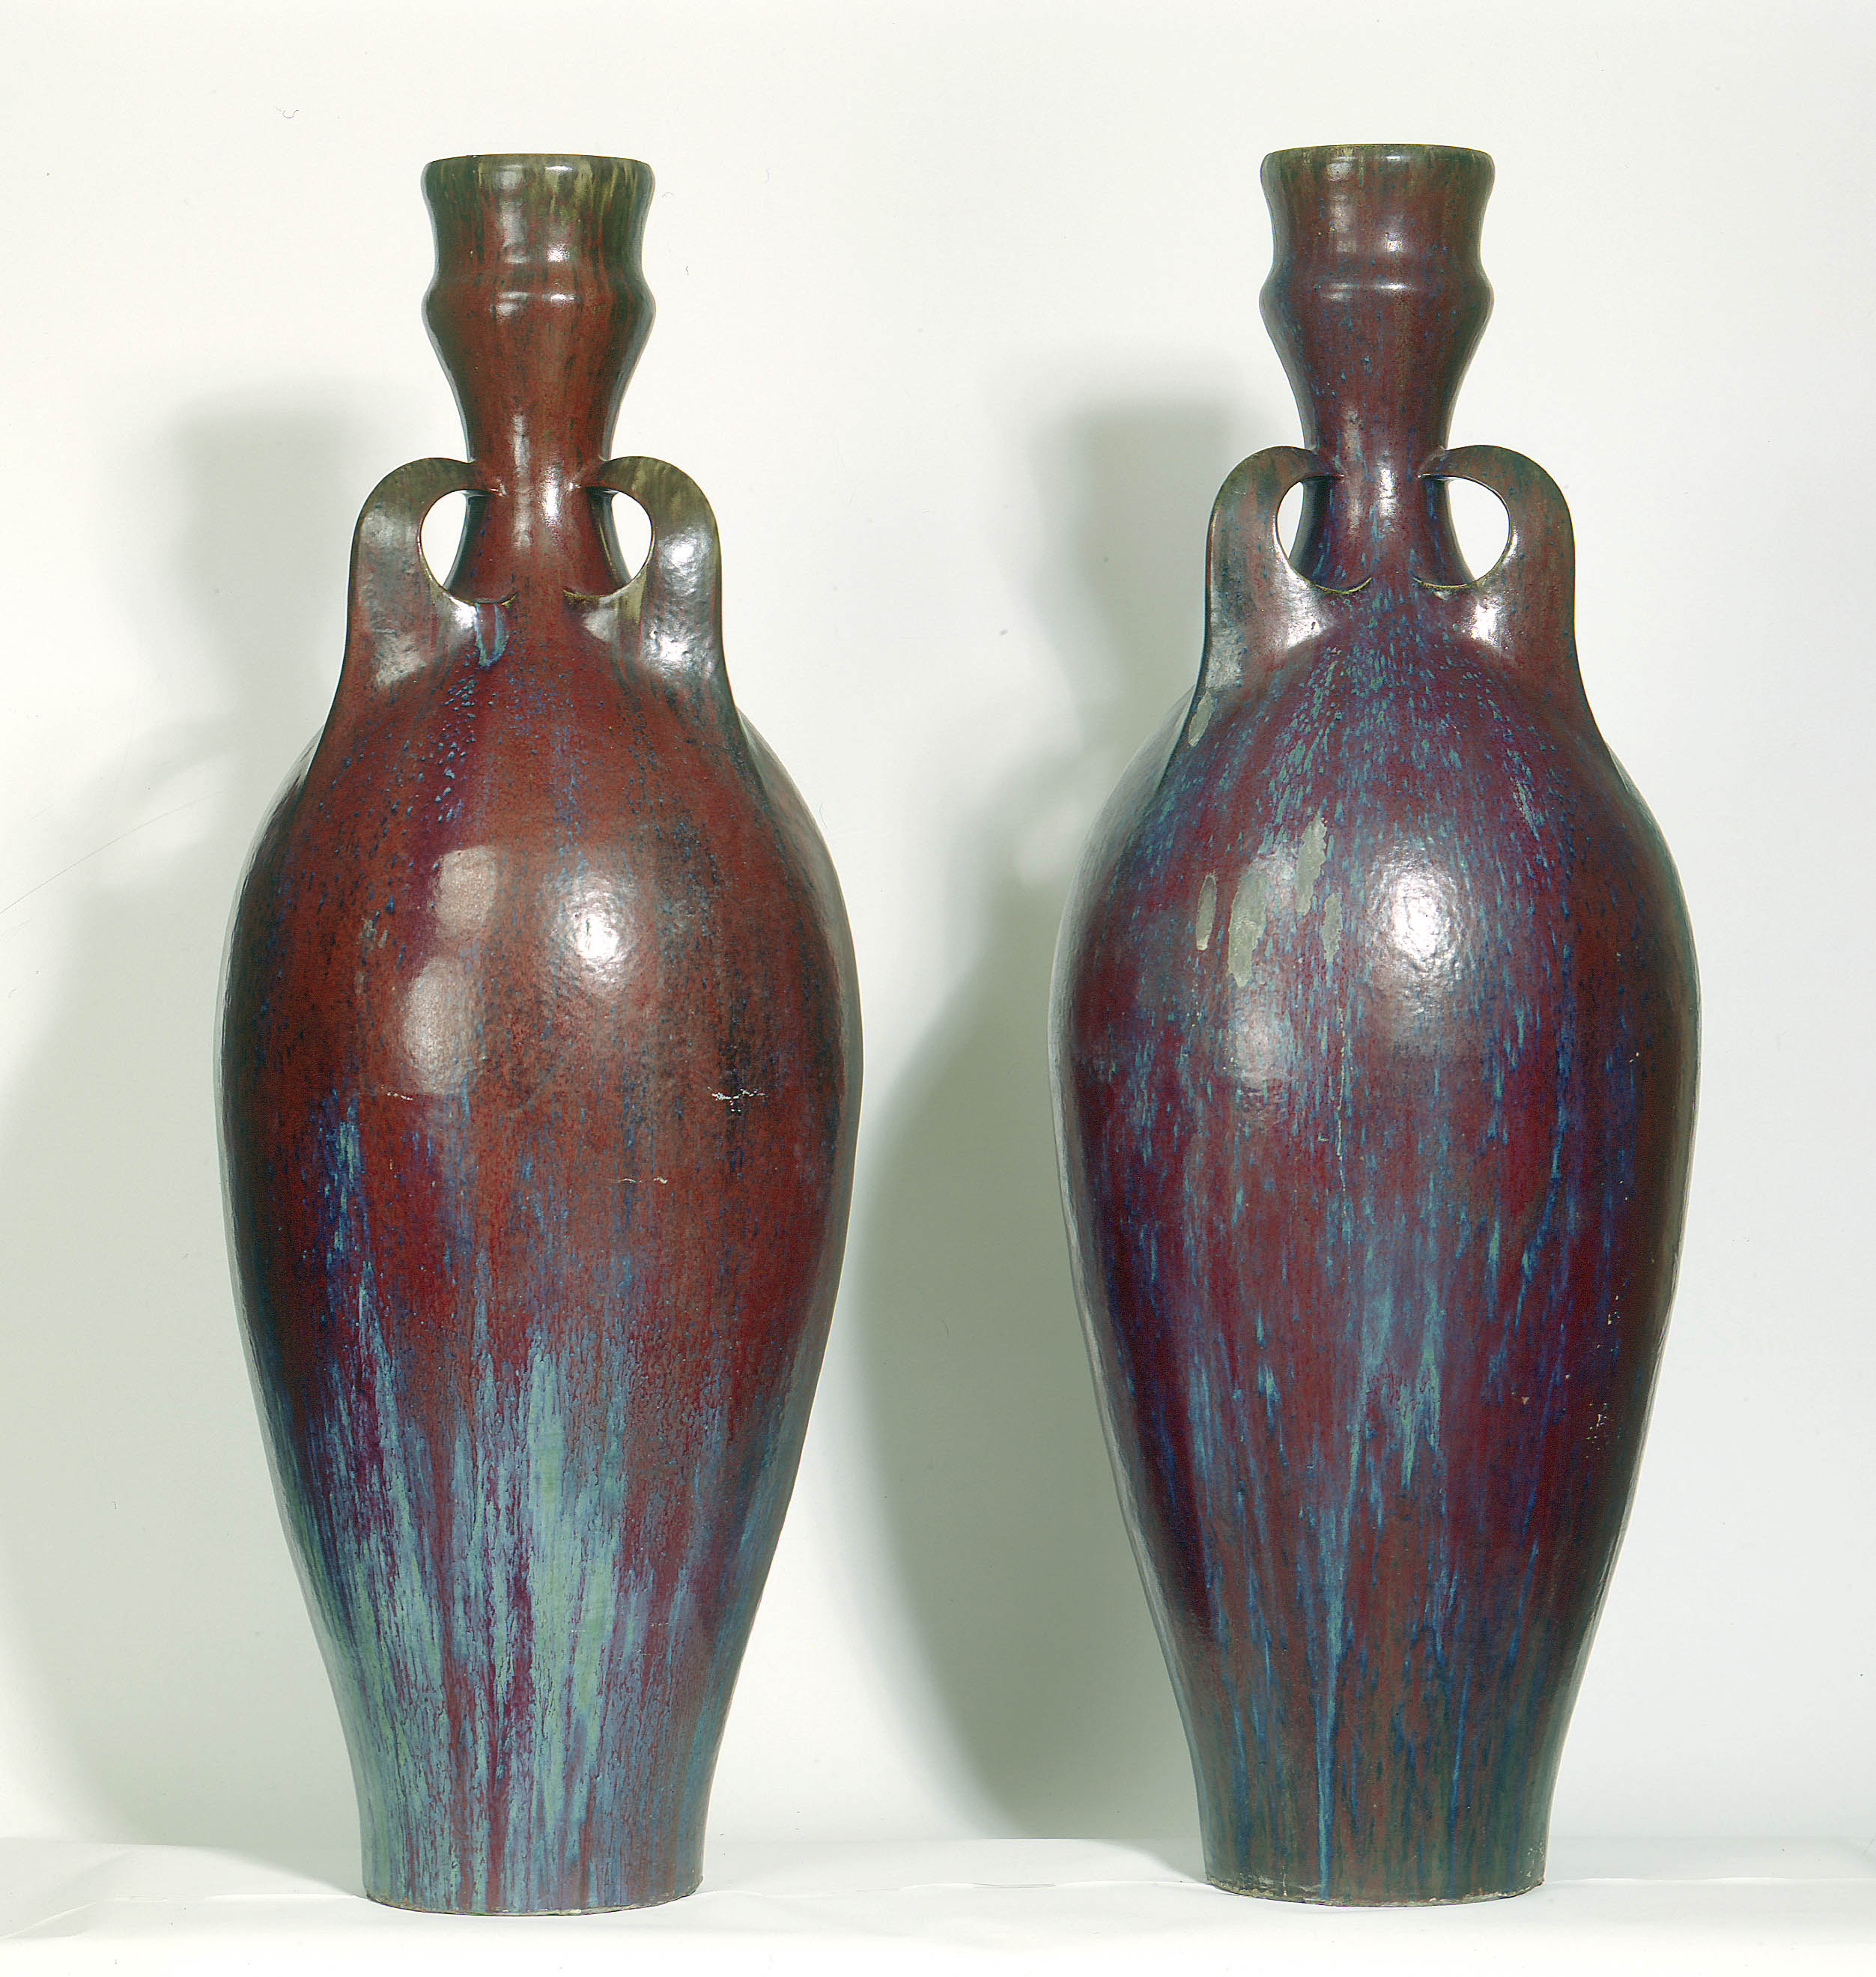 Pair of vases - Pierre-Adrien Dalpayrat